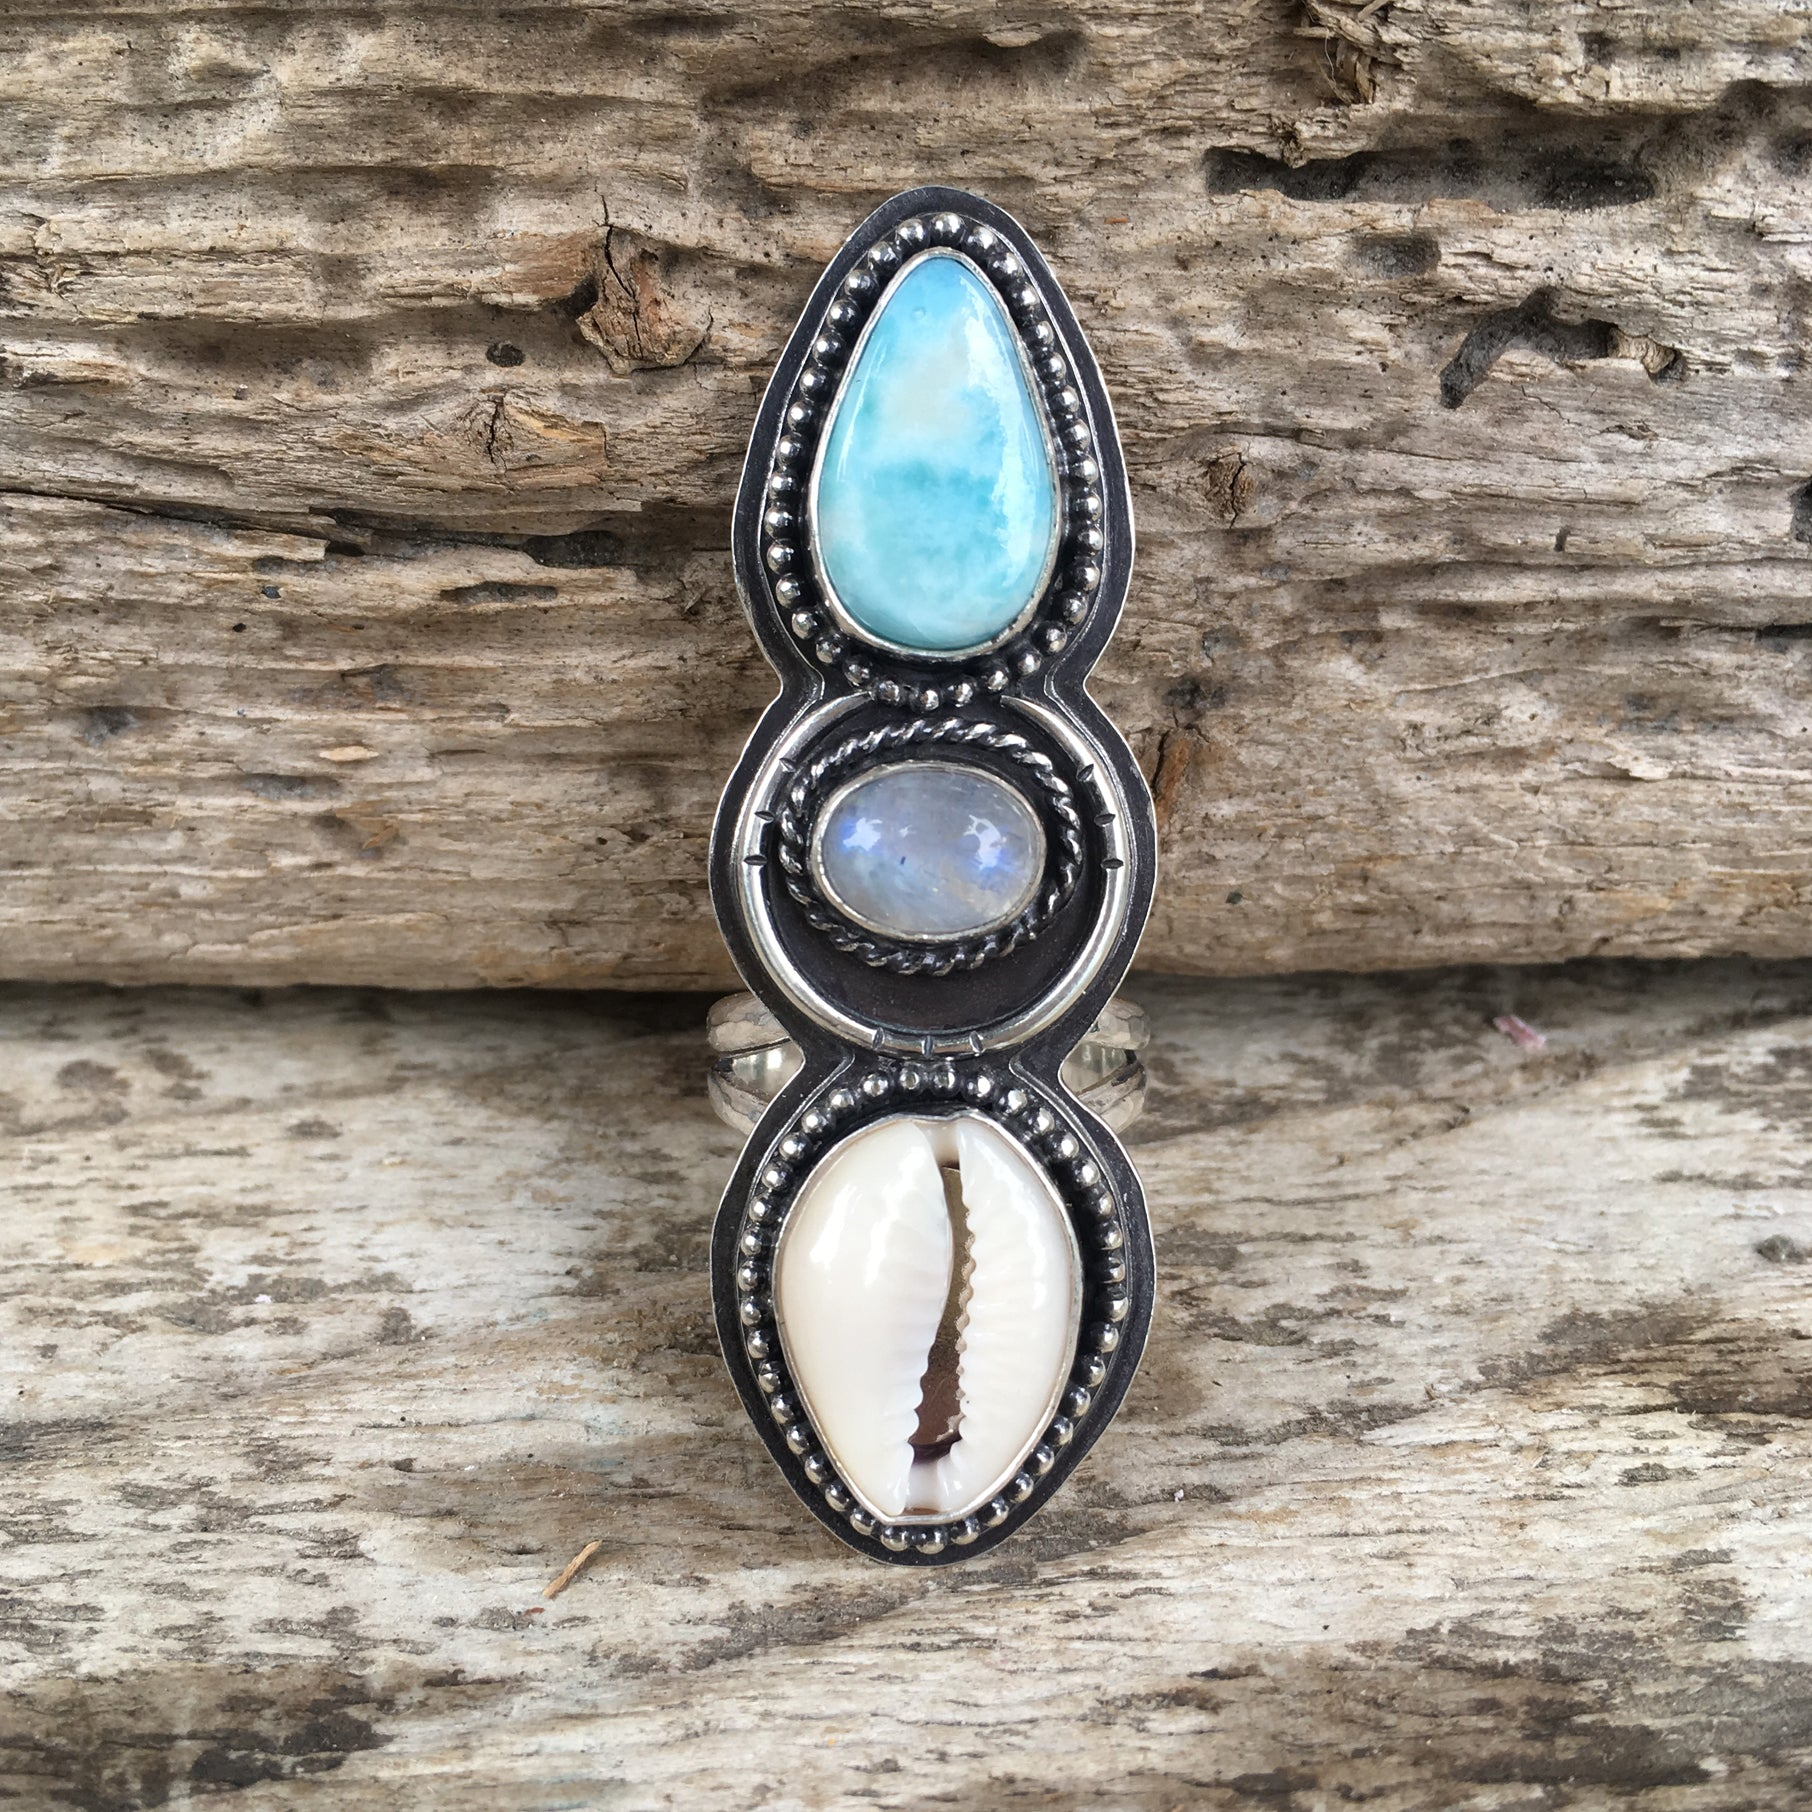 Alchemist Trio Ring with Larimar, Rainbow Moonstone and Cowry Shell